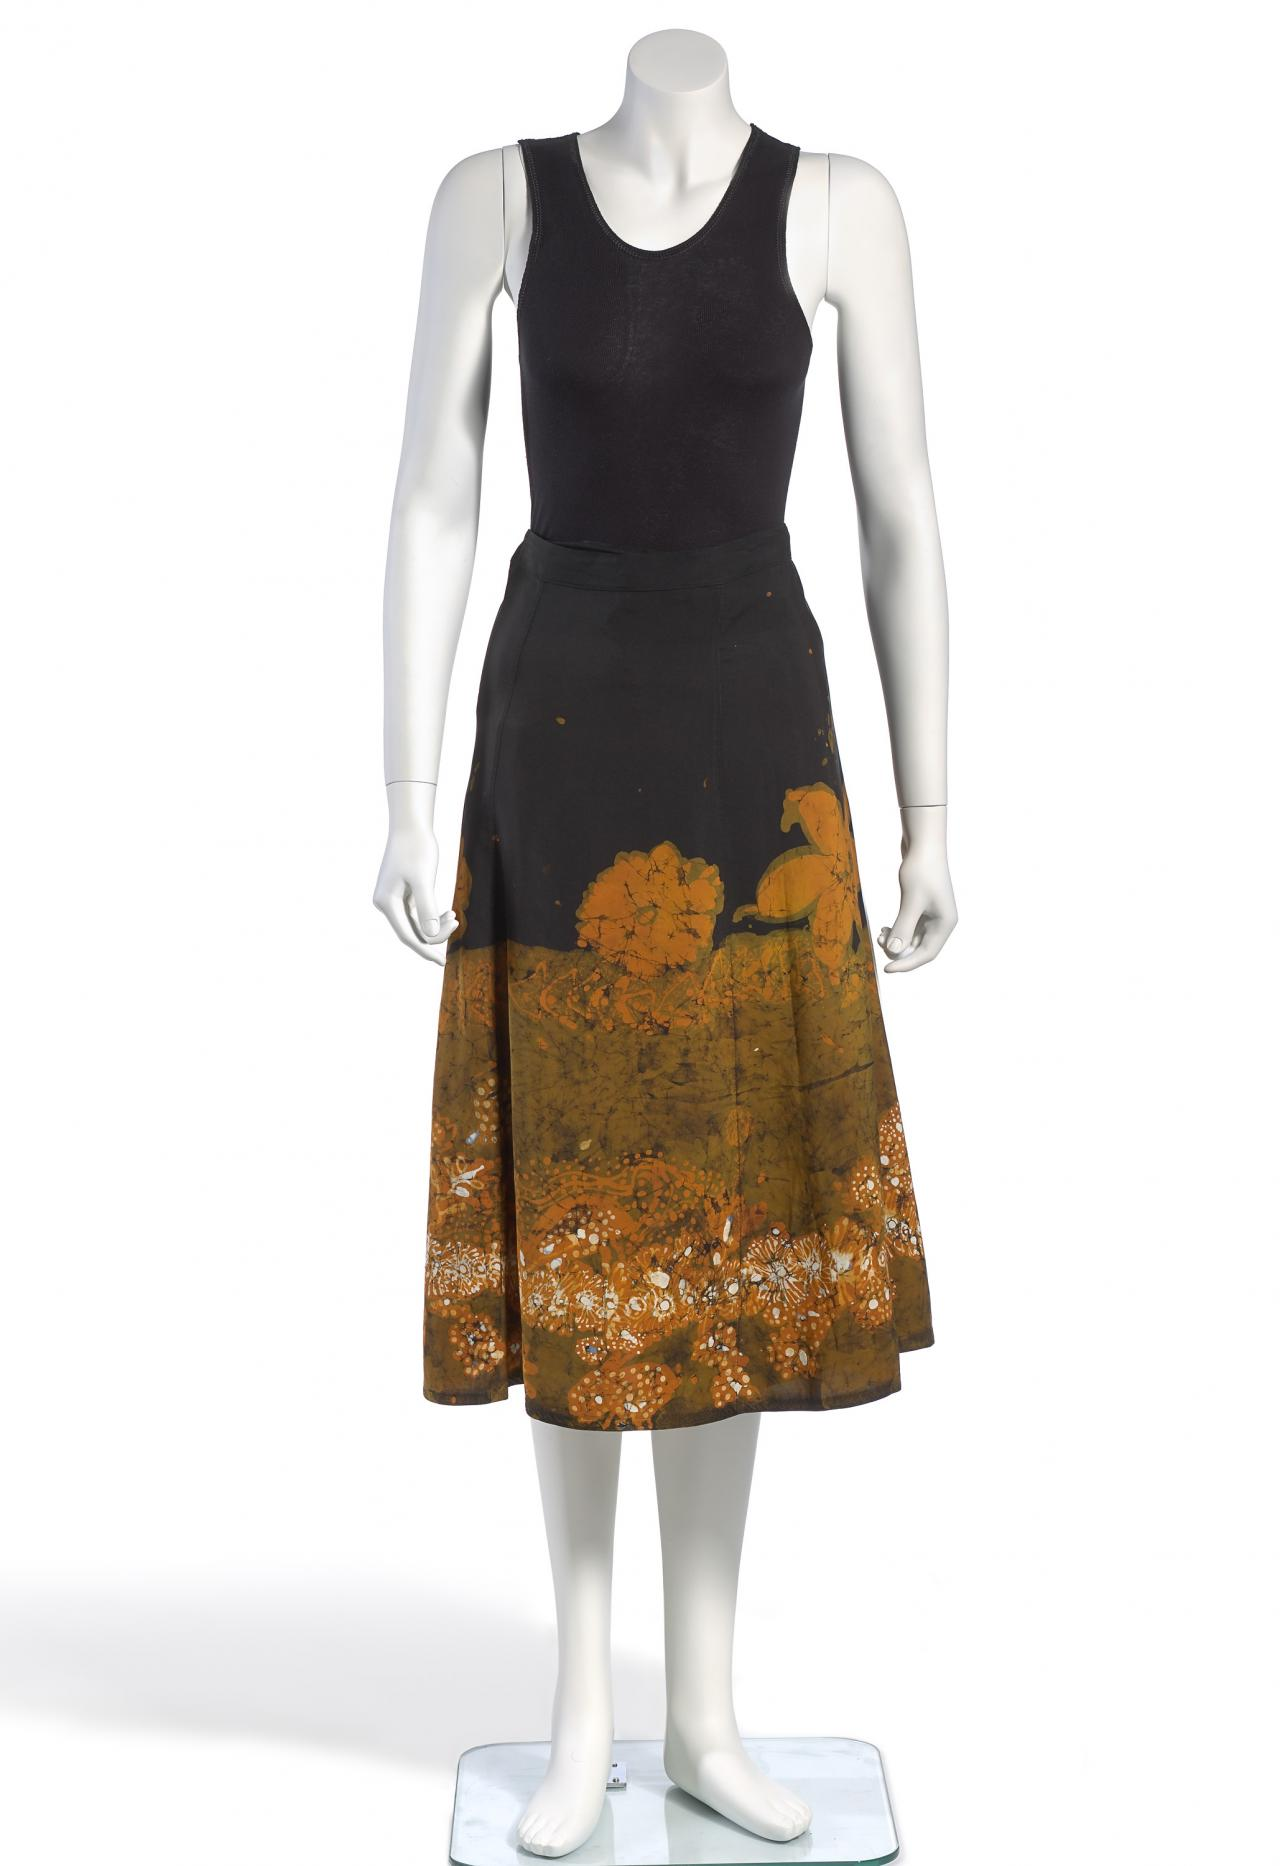 Wraparound skirt